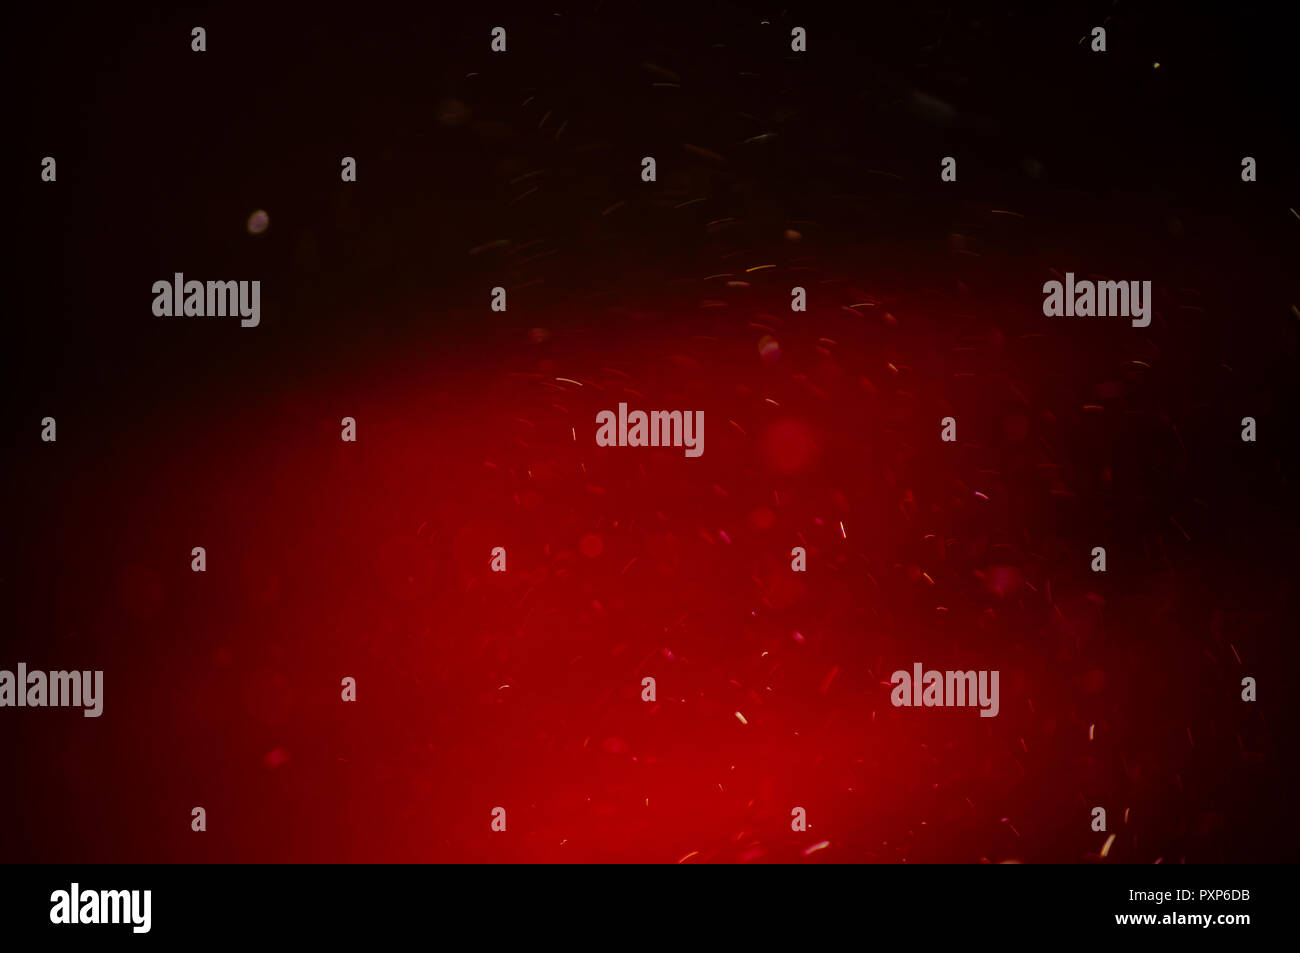 Abstract lighting sparkles on red drape background - Stock Image